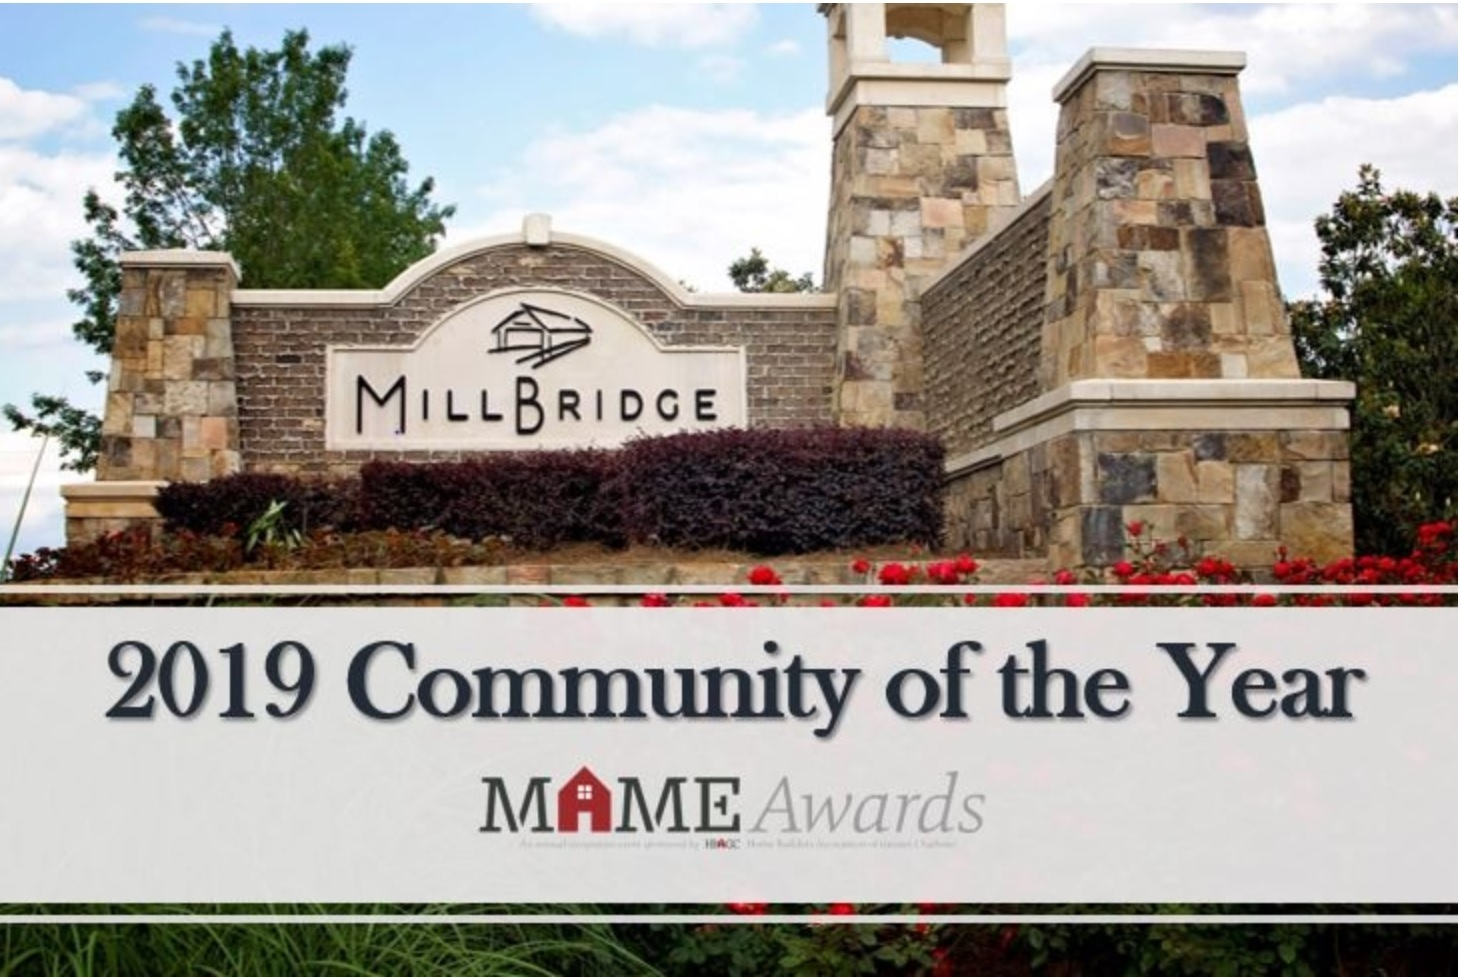 Millbridge In Waxhaw Community of The Year